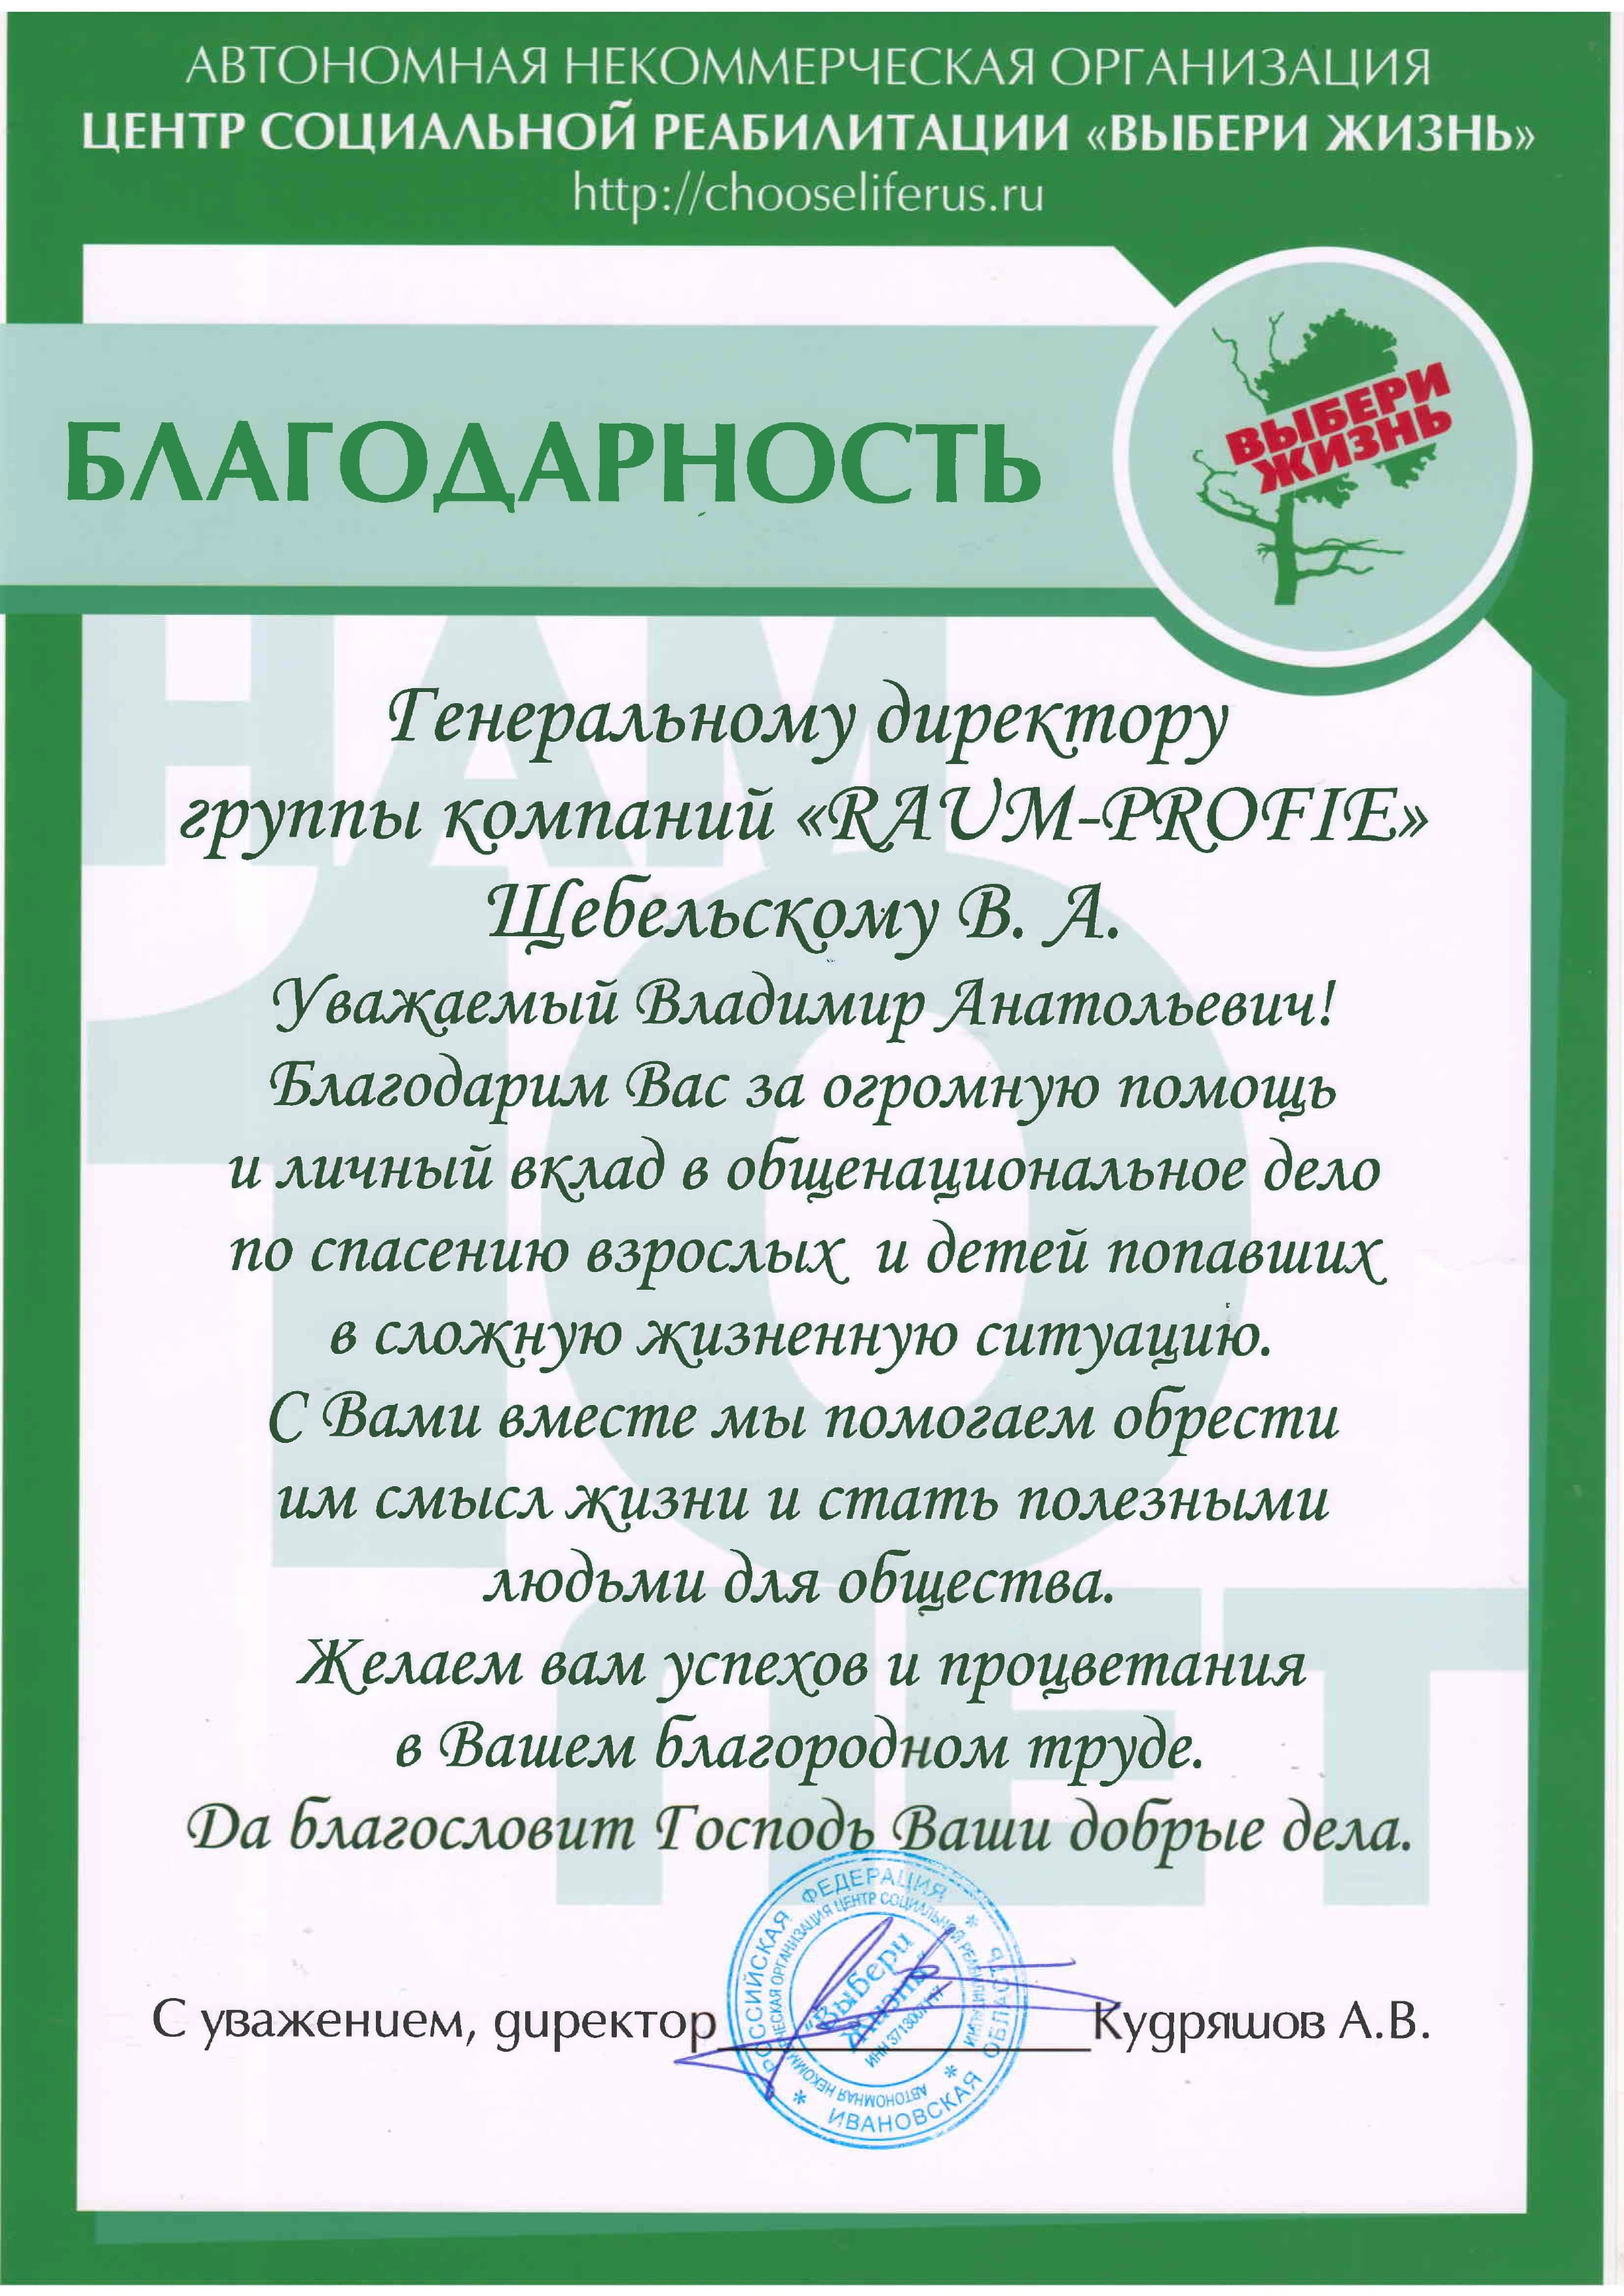 Thanks for the help to the center of social rehabilitation «Choose life»